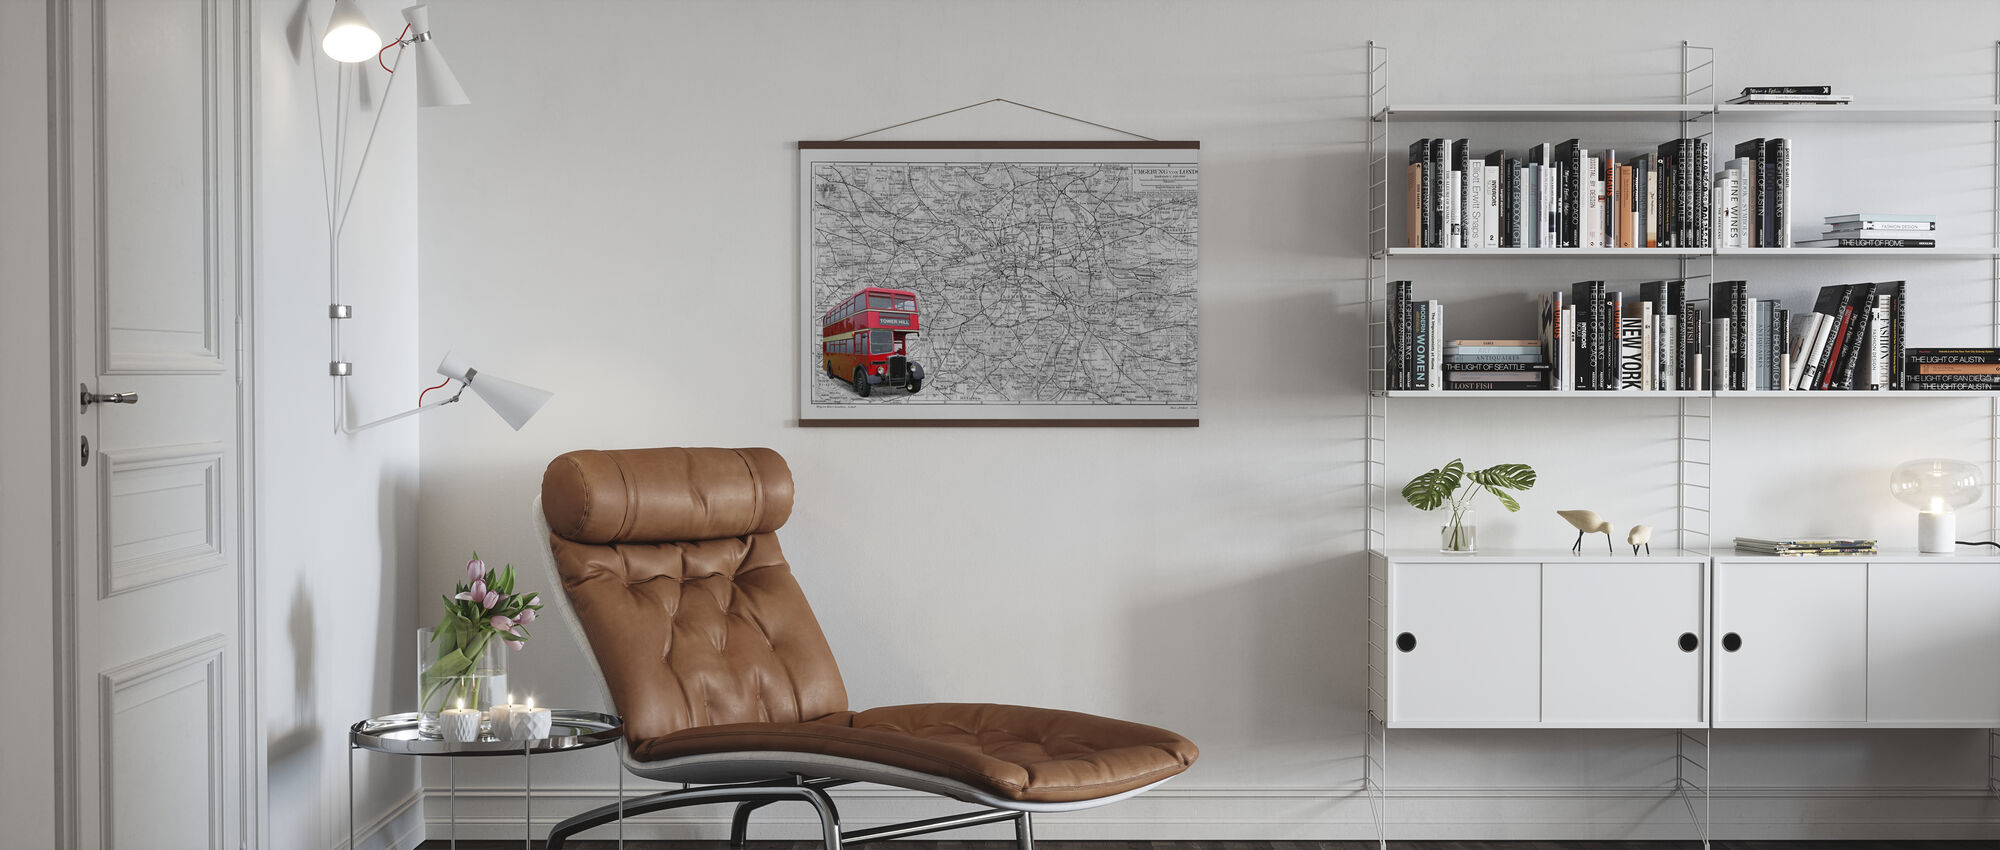 London Map with Bus - Colorsplash - Poster - Living Room